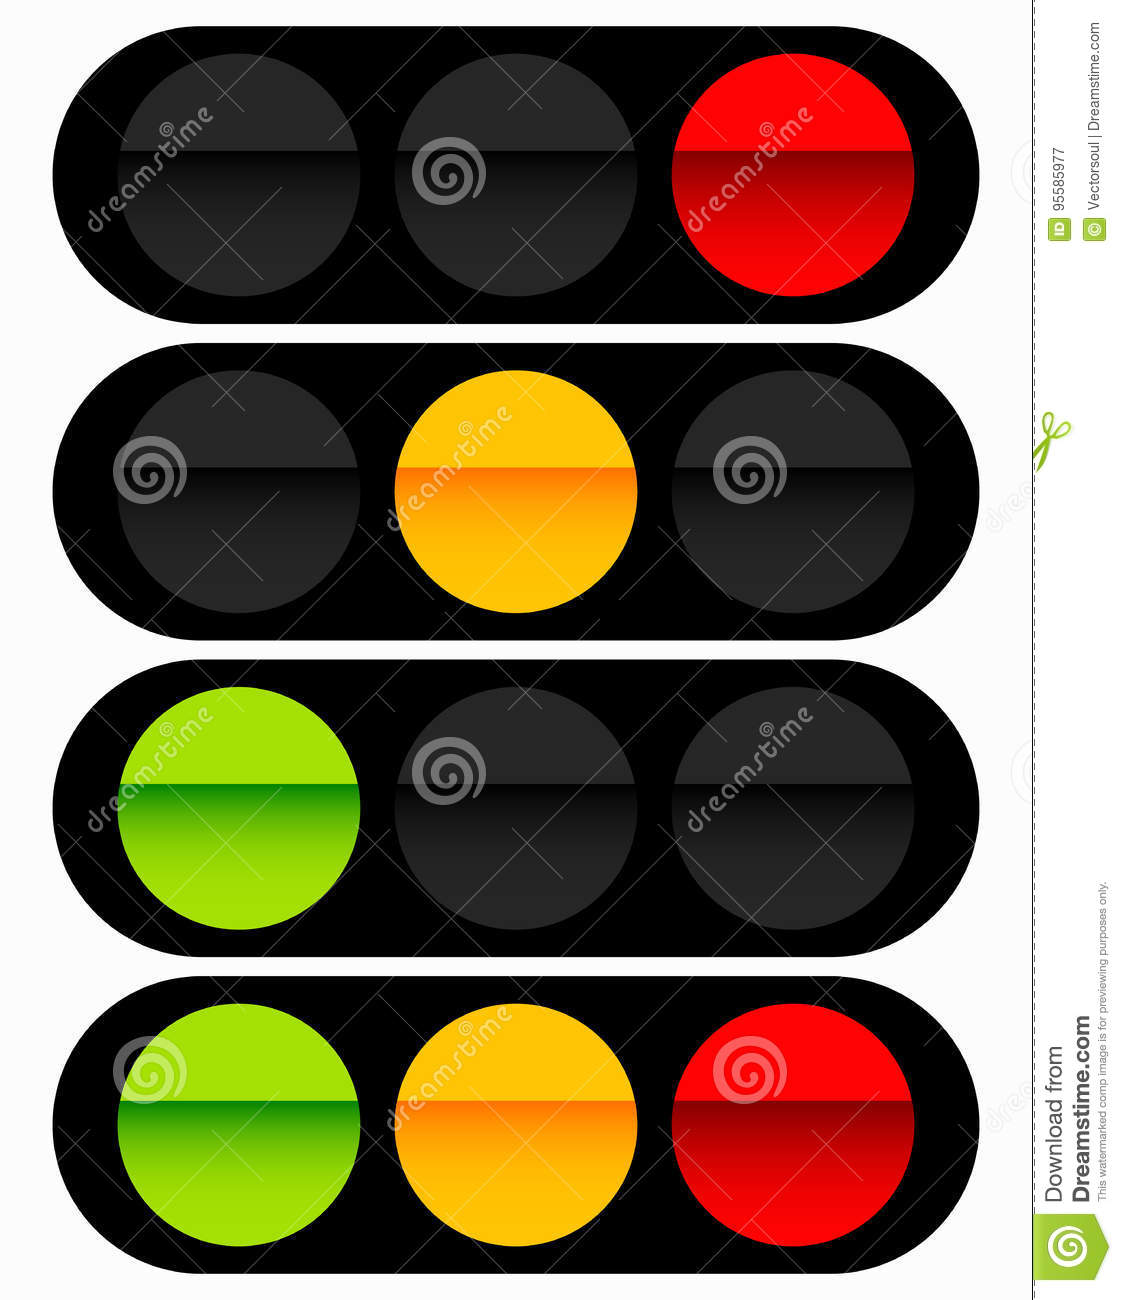 hight resolution of traffic light traffic lamp icon in set semaphore with green y